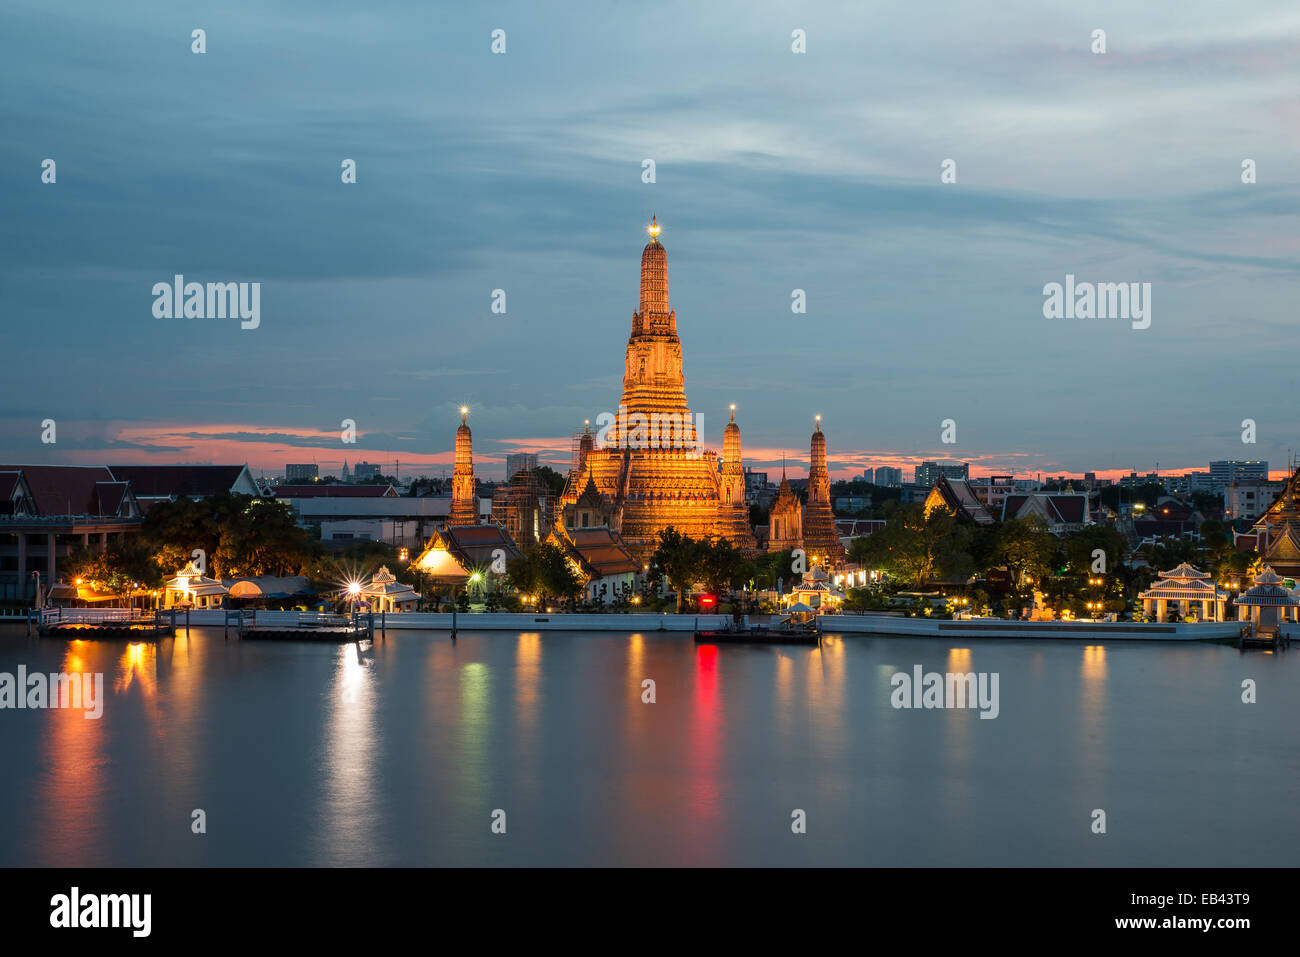 Wat Arun Buddhist religious places in twilight time, Bangkok, Thailand - Stock Image